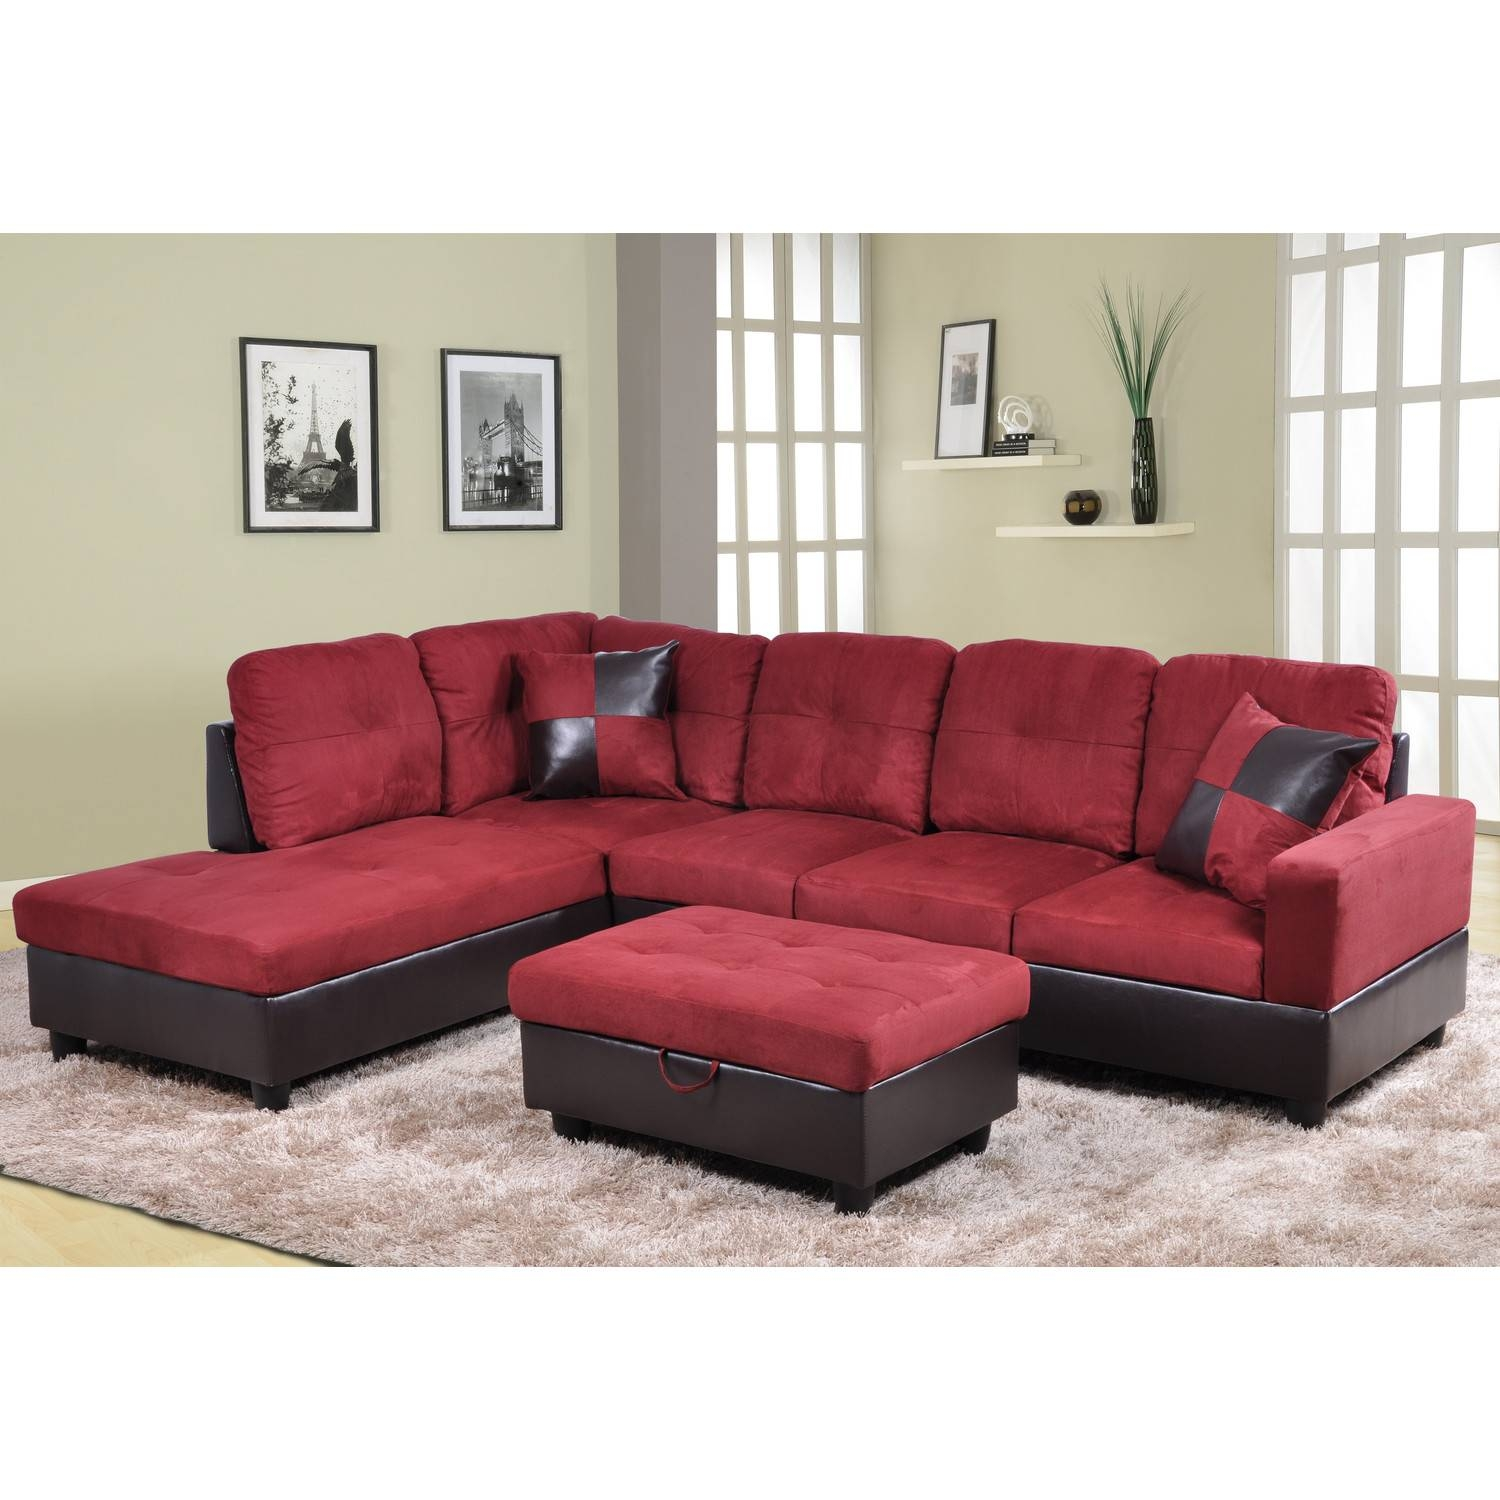 Furniture: Beautiful Sectional Sofas Cheap For Living Room pertaining to Discounted Sectional Sofa (Image 14 of 30)